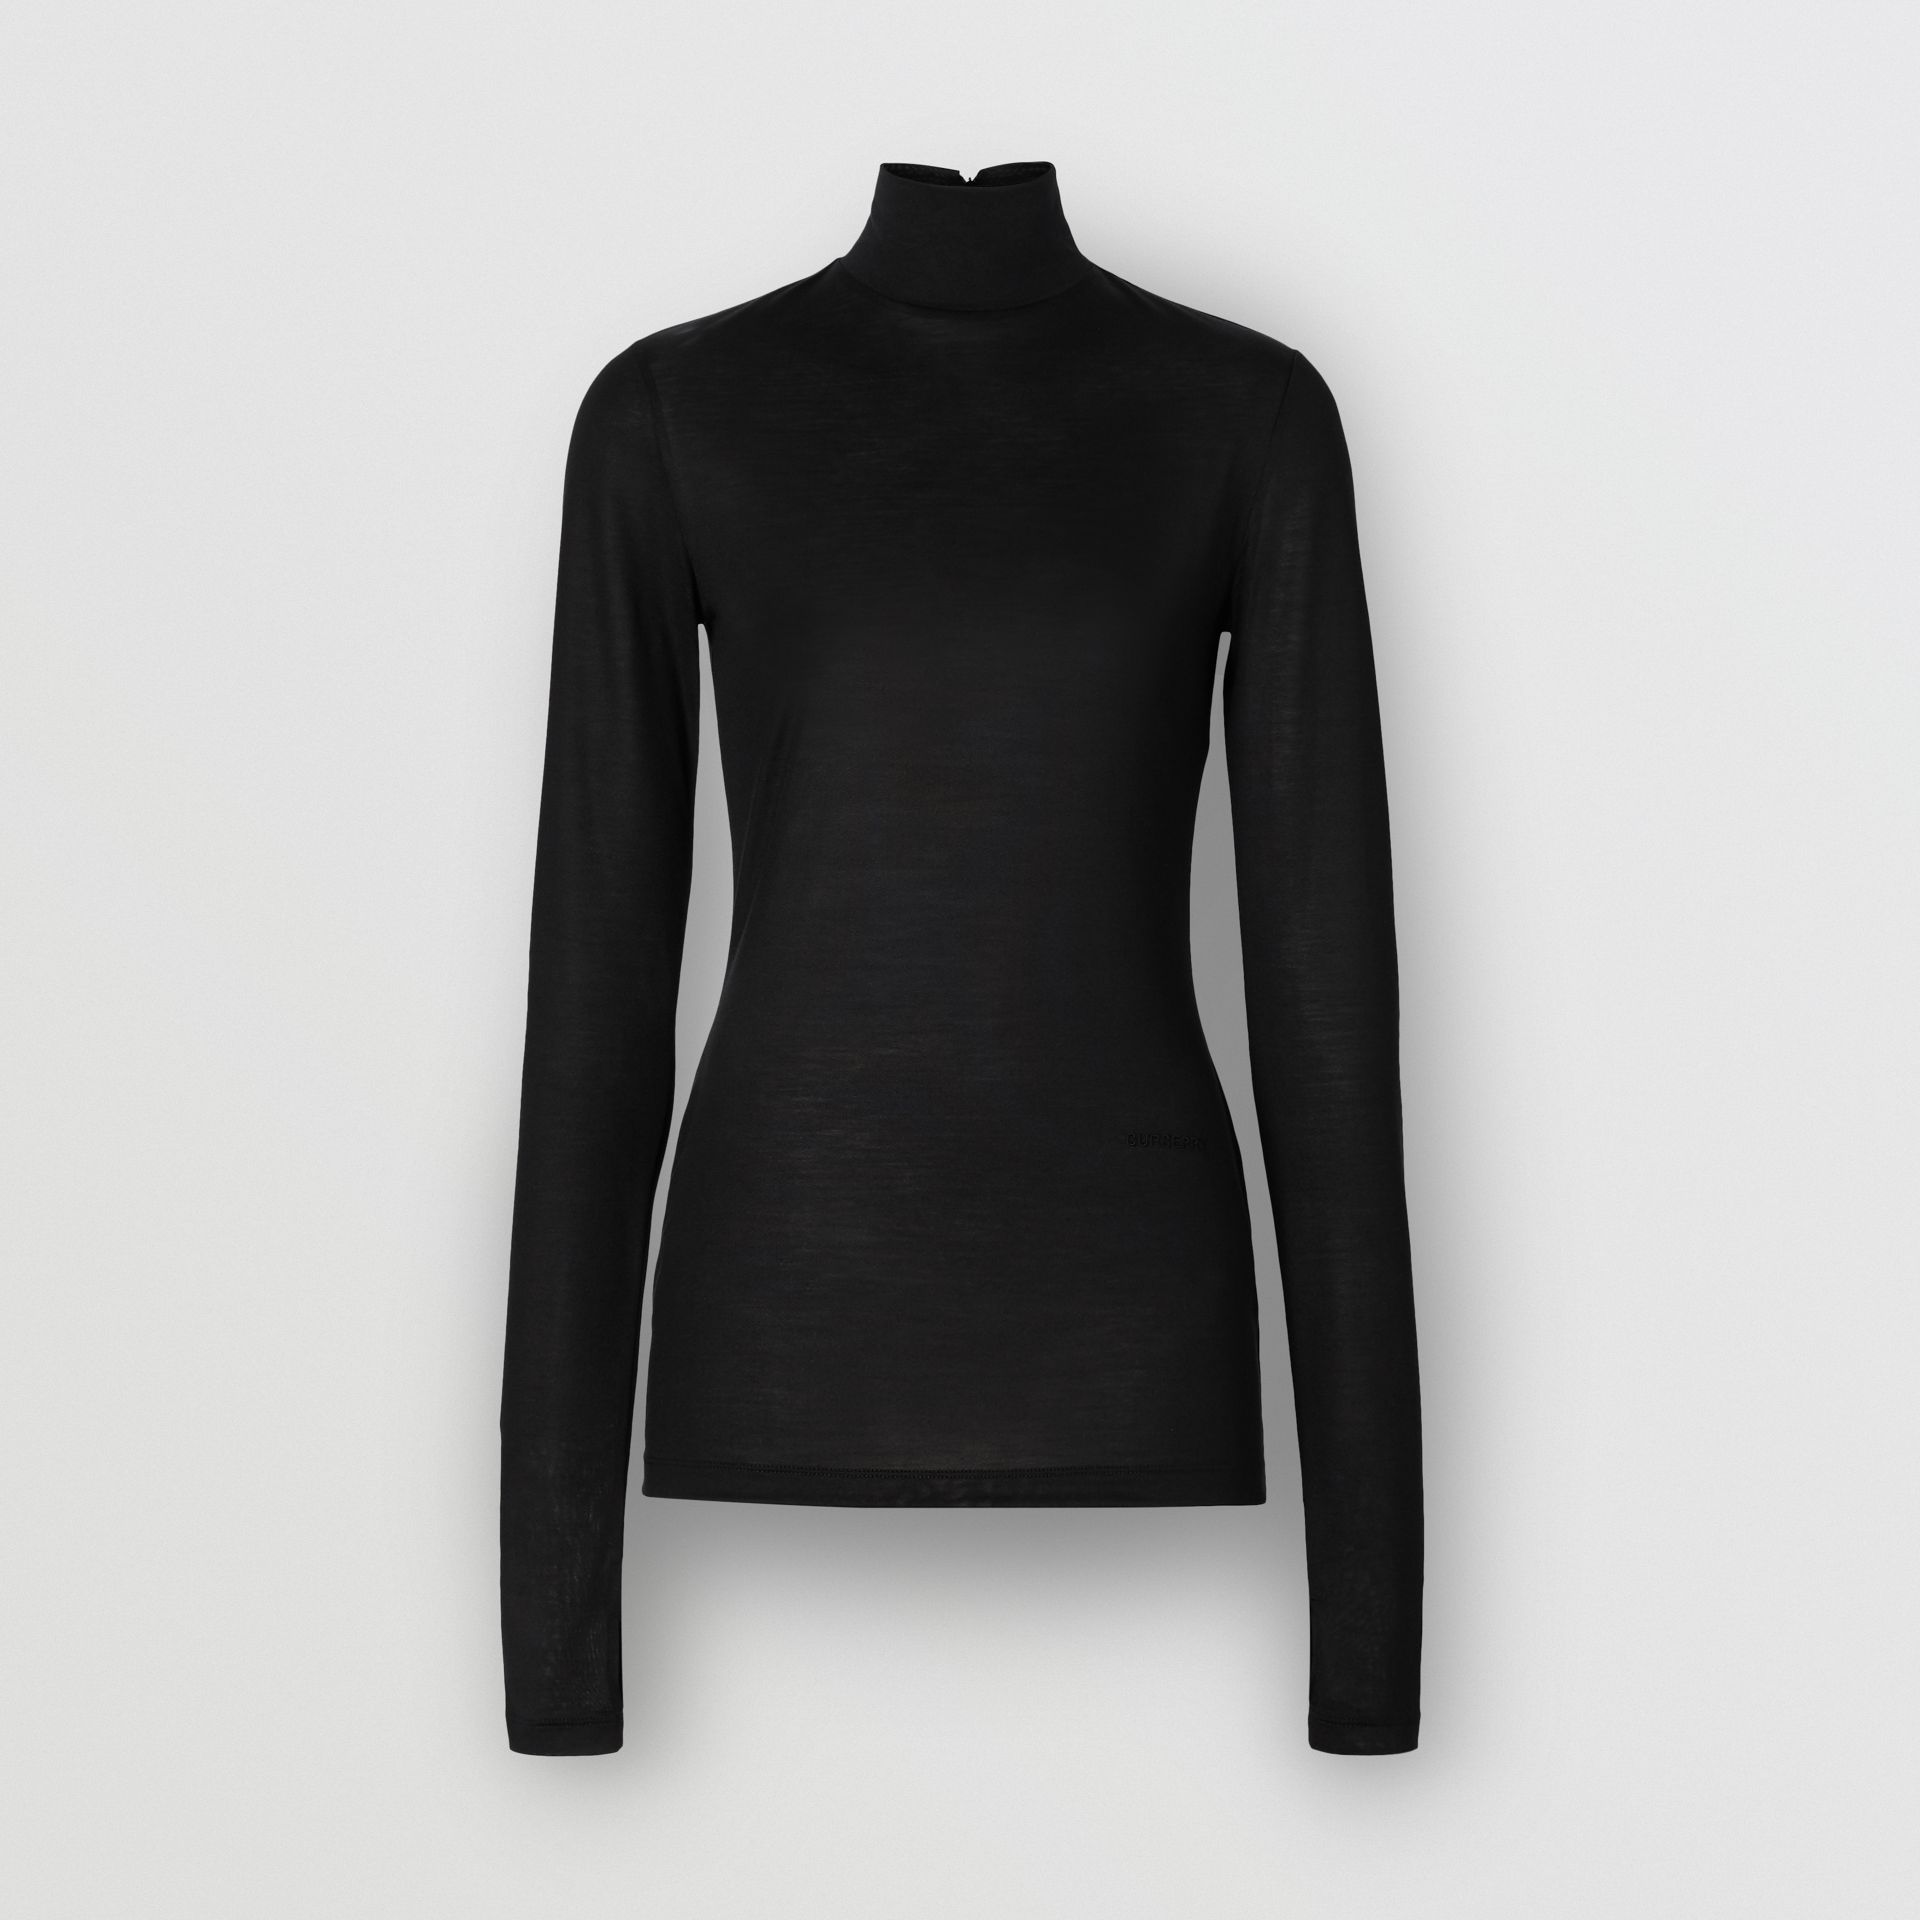 Silk Jersey Turtleneck Top in Black - Women | Burberry Hong Kong S.A.R - gallery image 3